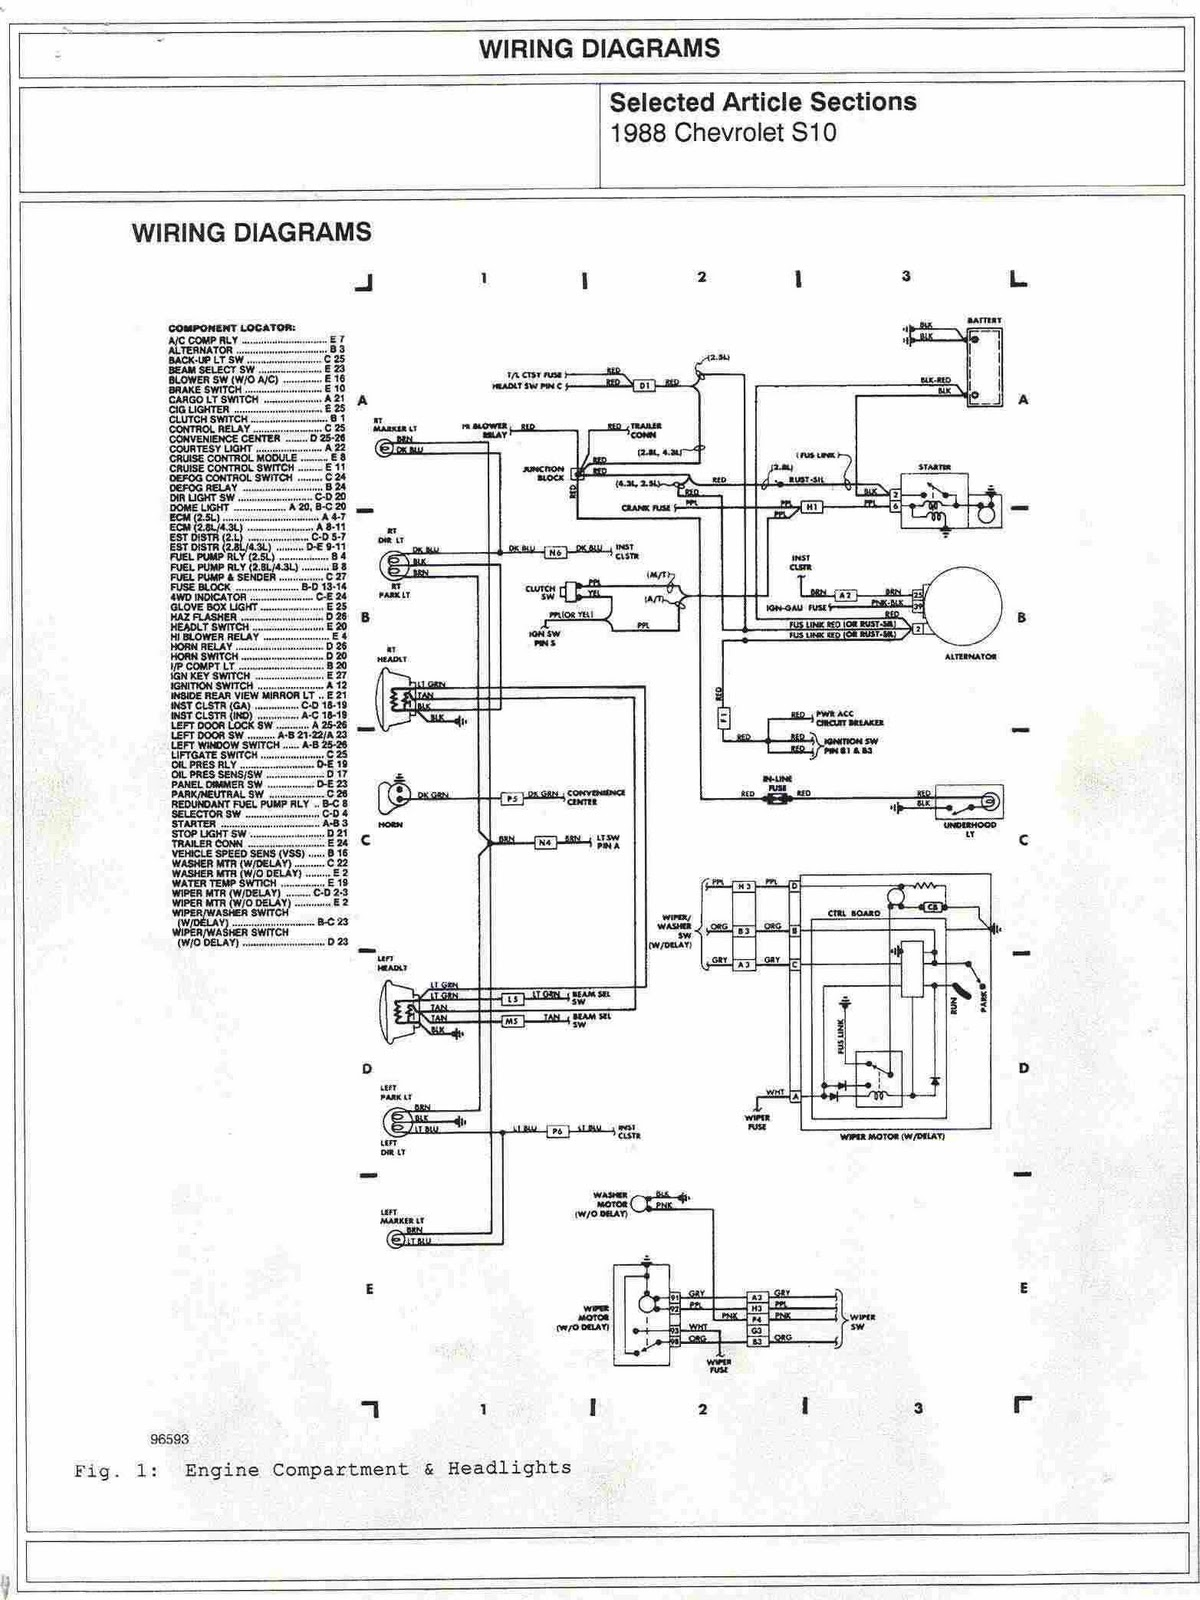 1988+Chevrolet+S10+Engine+Compartment+and+Headlights+Wiring+Diagrams 1988 chevrolet s10 engine compartment and headlights wiring s10 headlight wiring diagram at creativeand.co